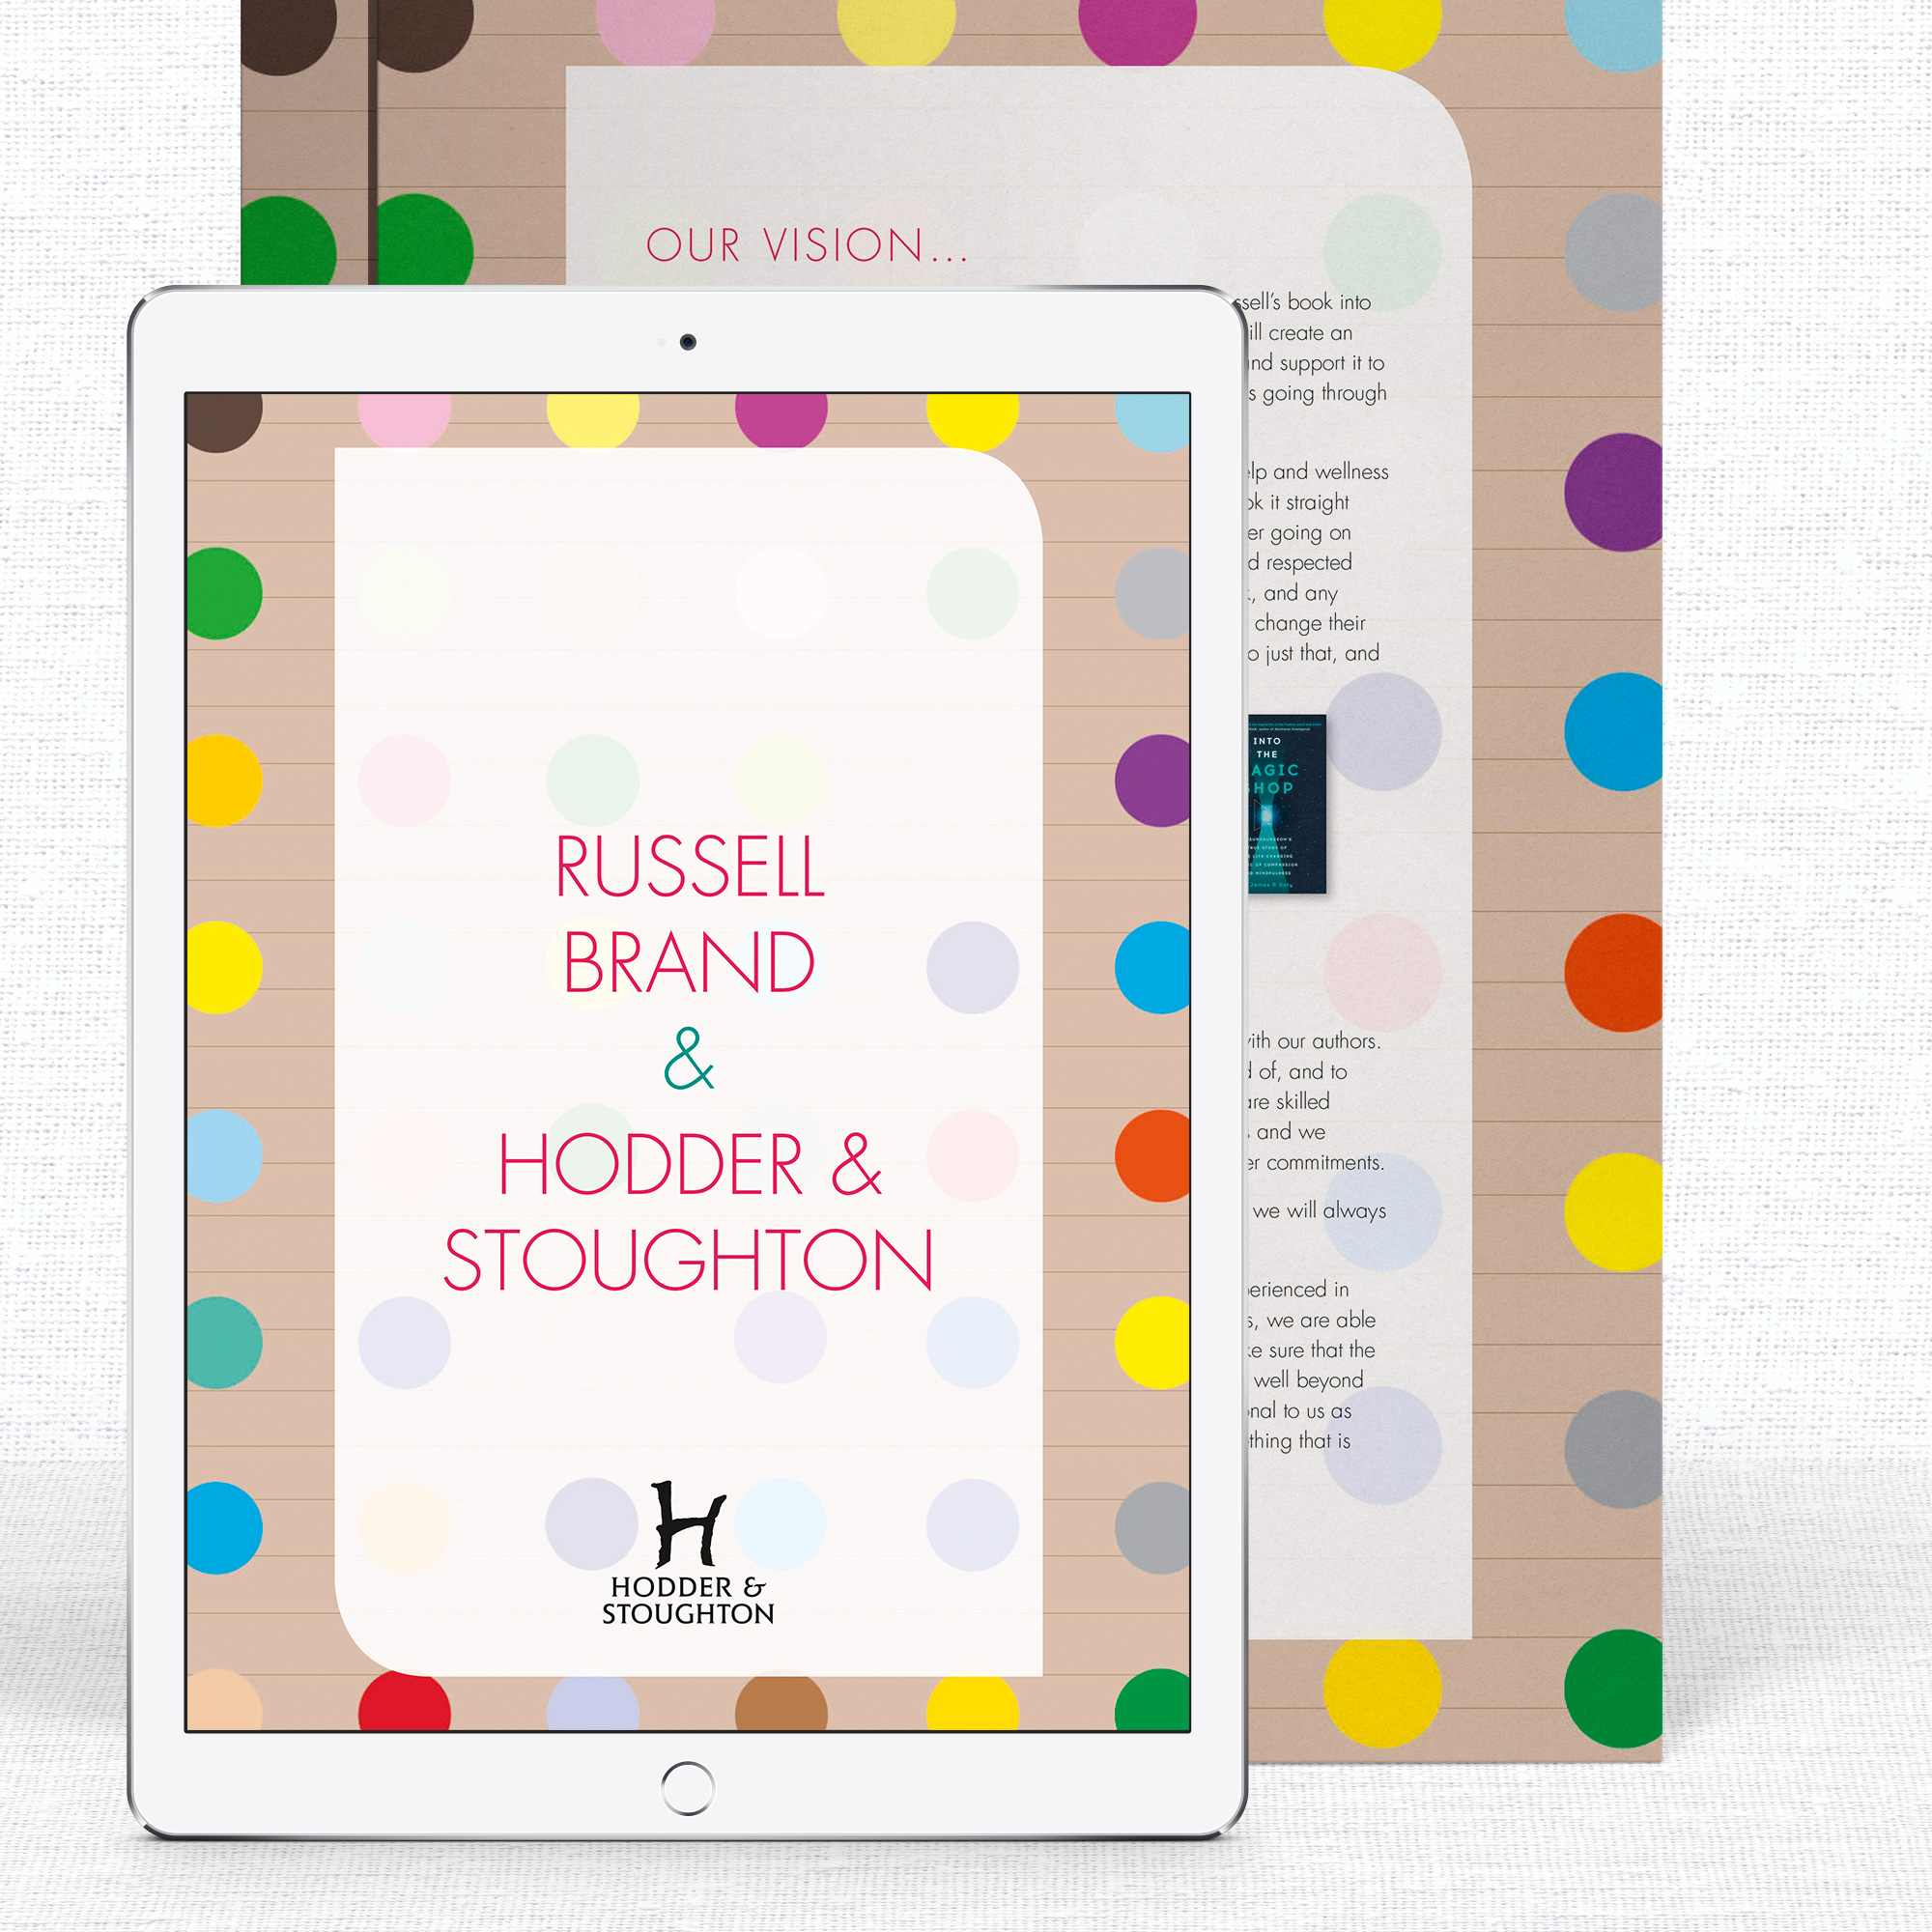 Pitch Deck for Hodder & Stoughton